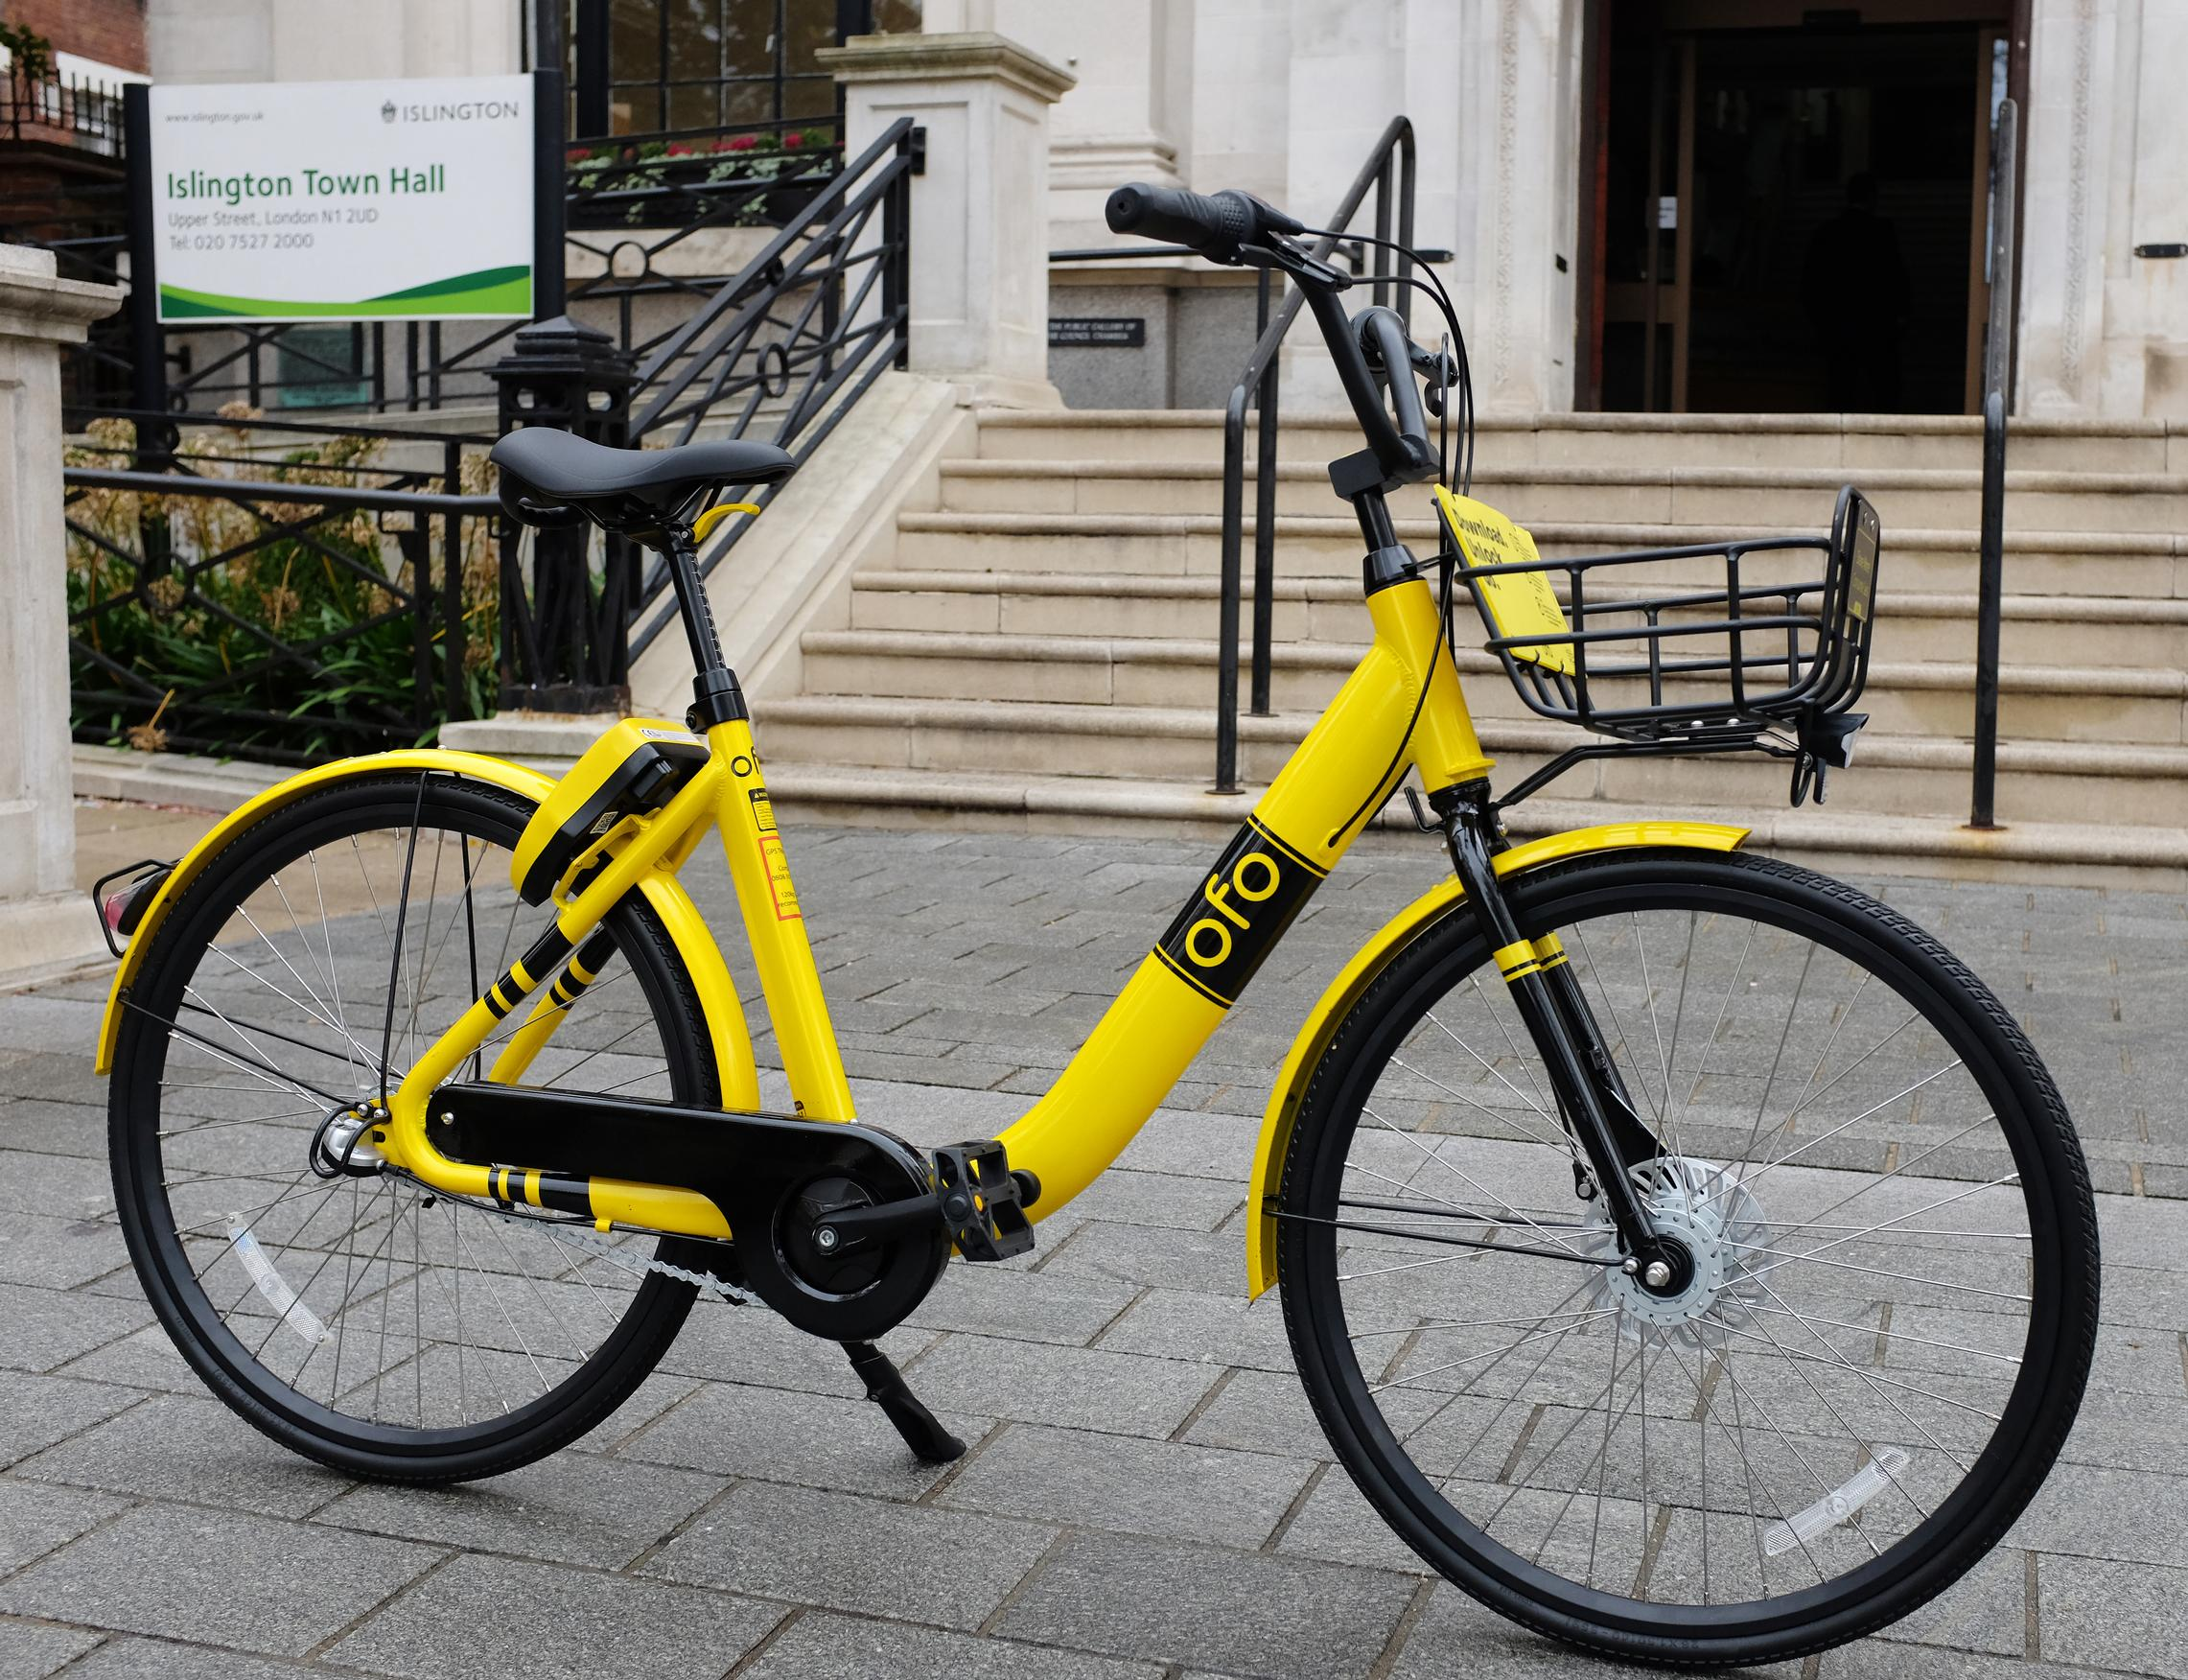 Dockless bike hire has landed in Islington and the City of London as bike share operator Ofo continues towards its aim of 20 million bikes globally